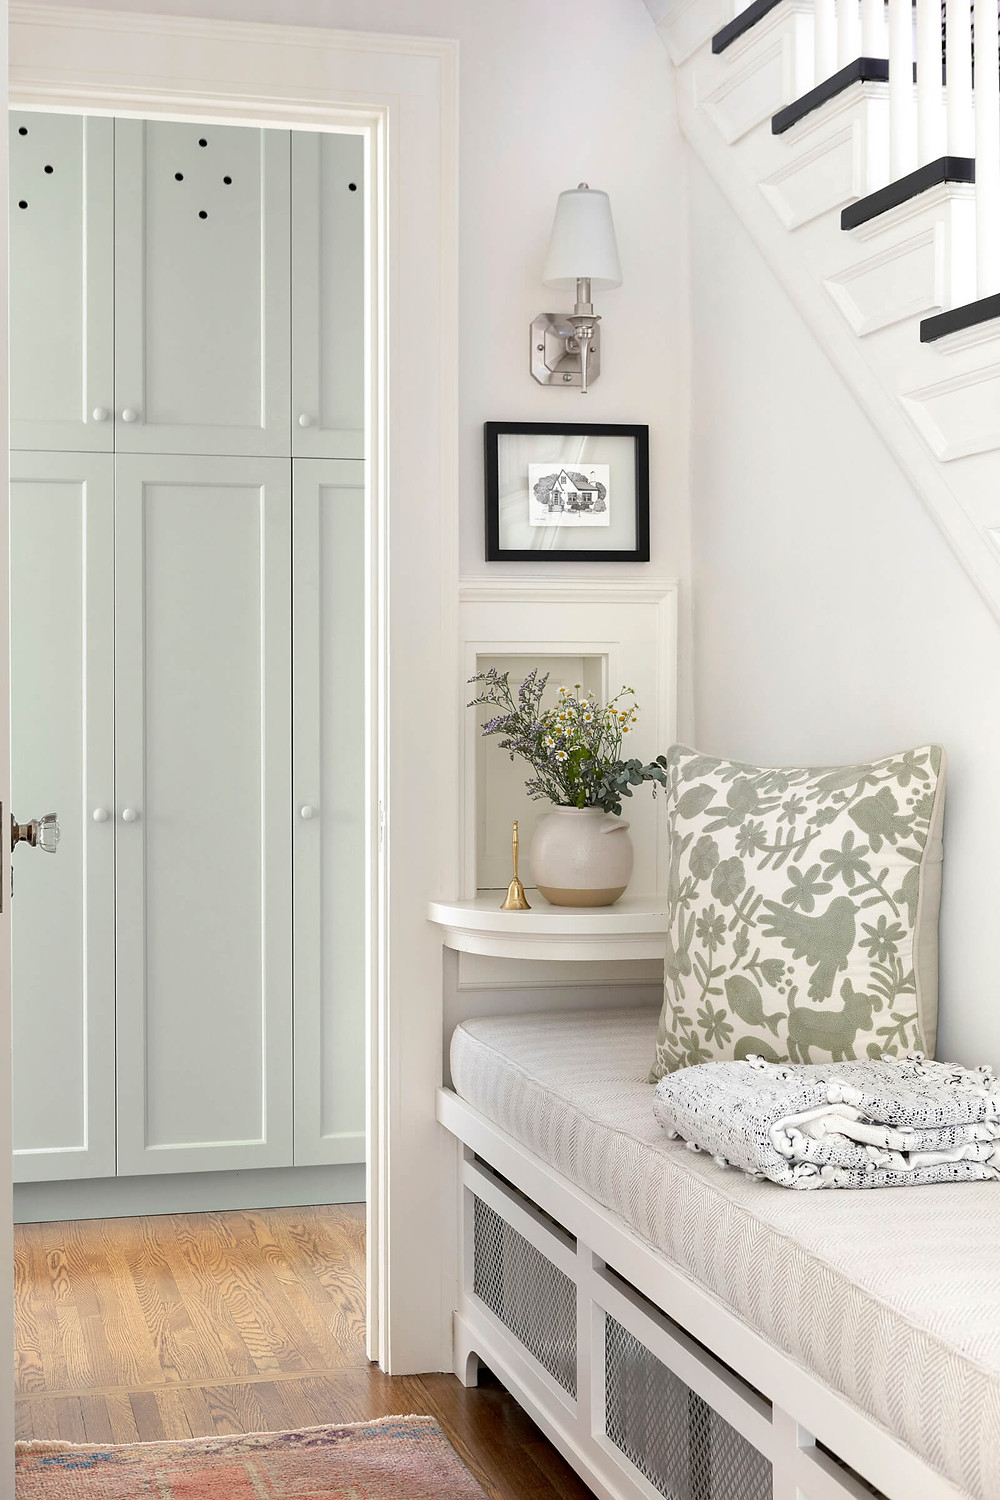 Charming hallway phone booth ledge with Jkath custom made radiator cover bench viewing in on pantry cabinet